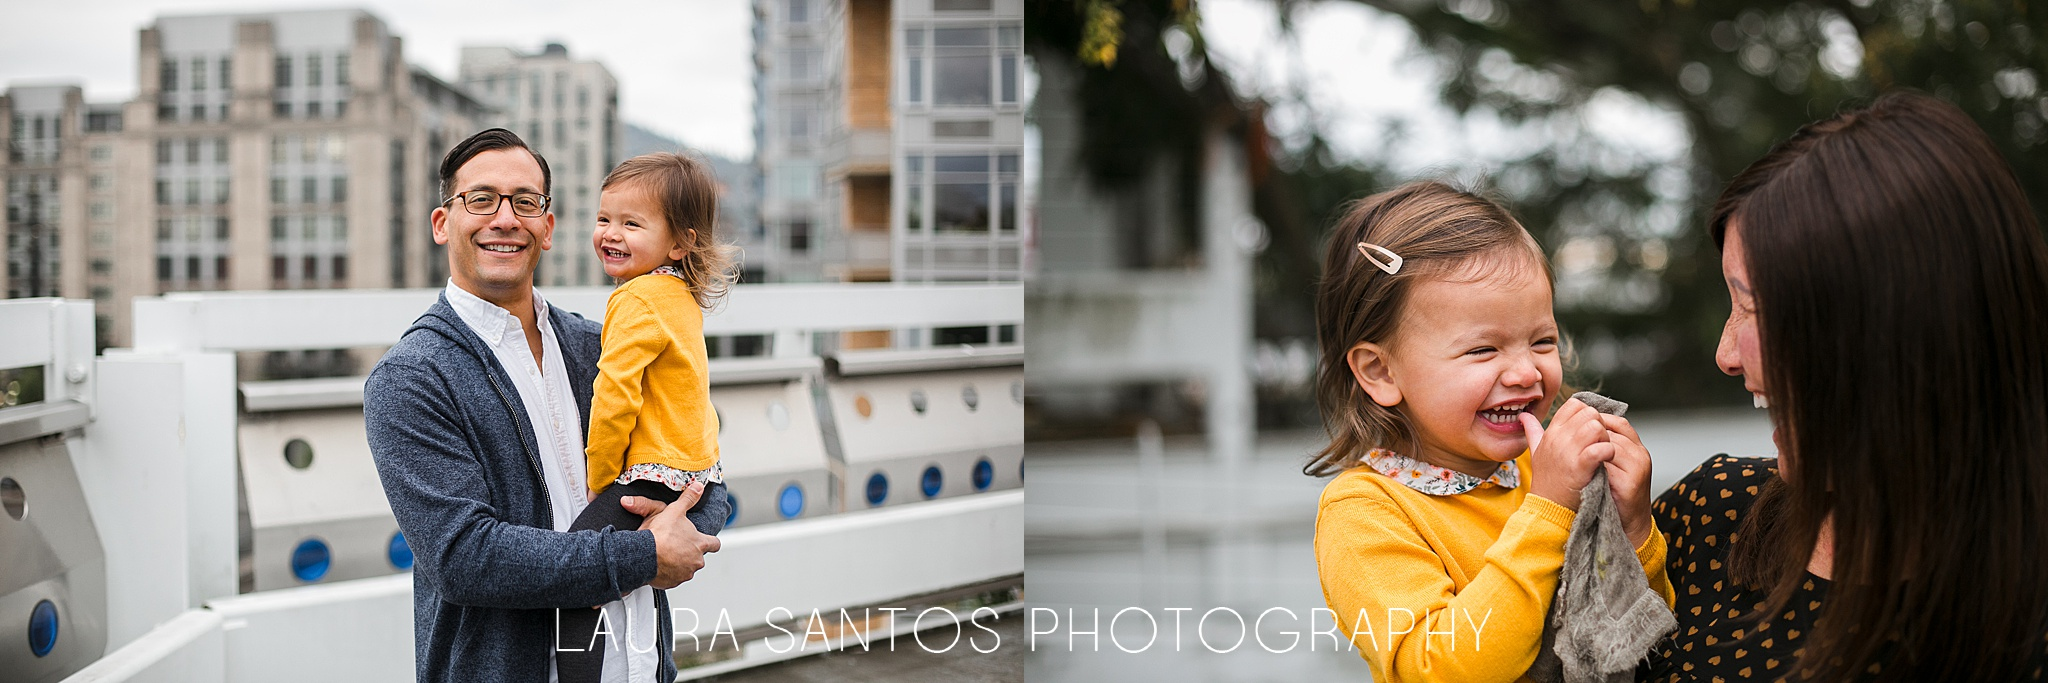 Laura Santos Photography Portland Oregon Family Photographer_0887.jpg